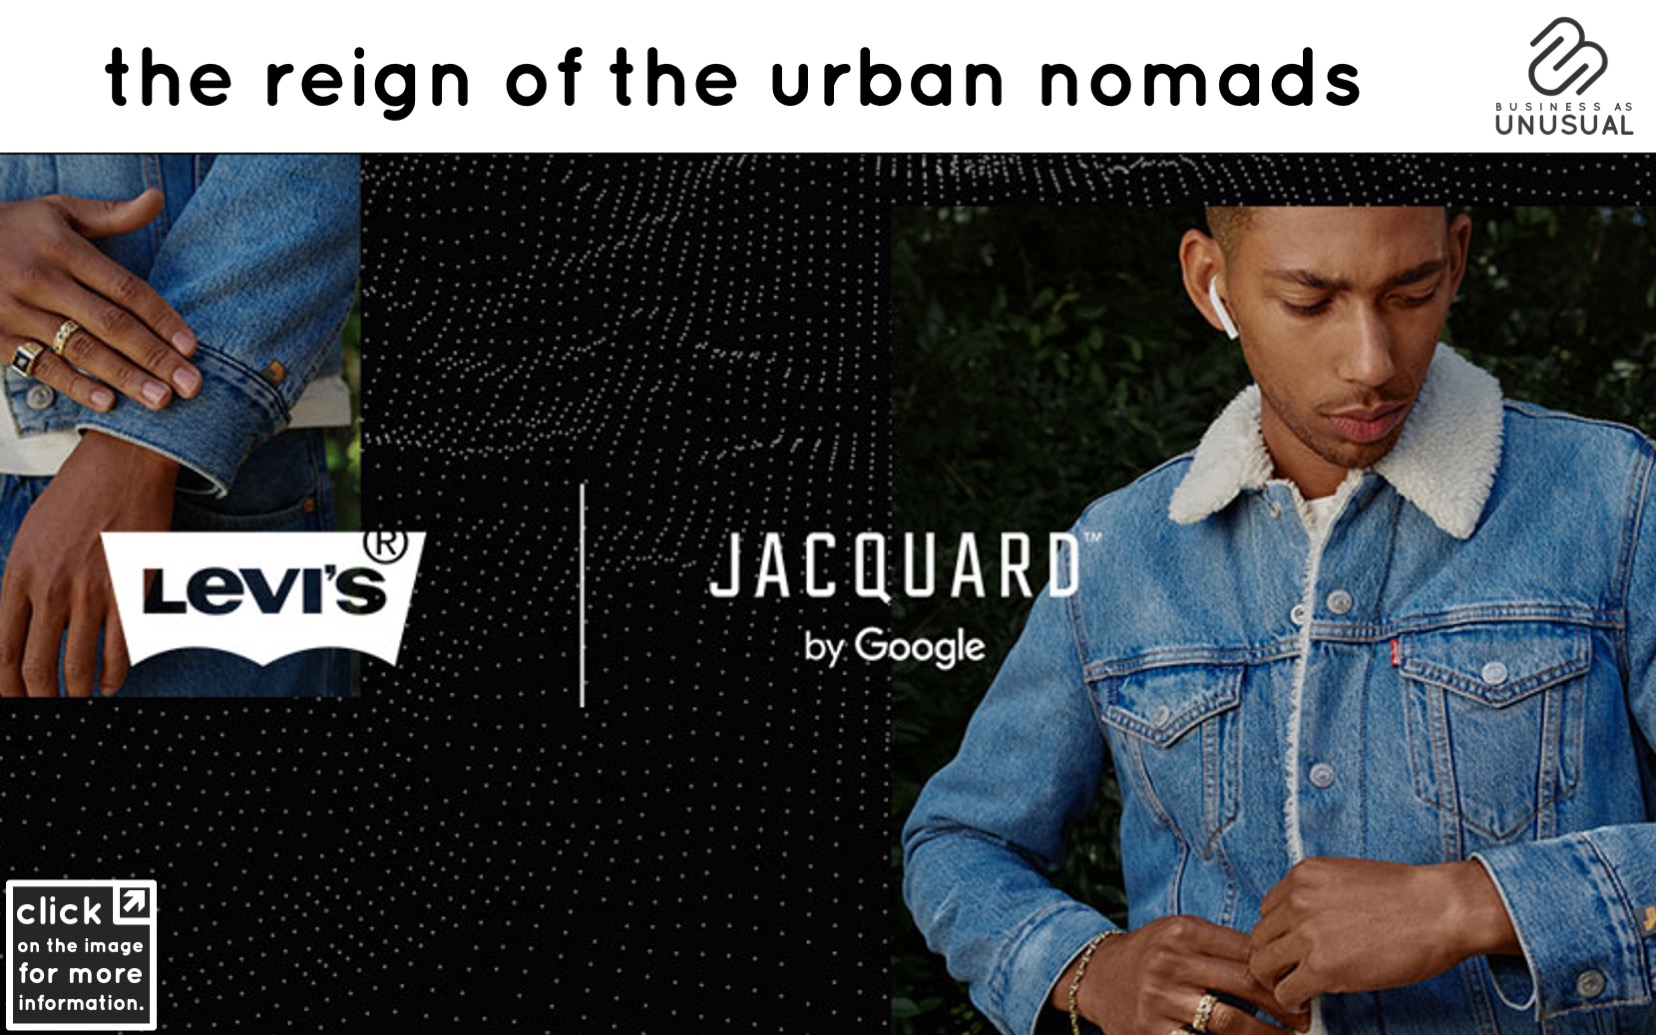 The Reign of the Urban Nomads - Levi's Jacquard Jacket